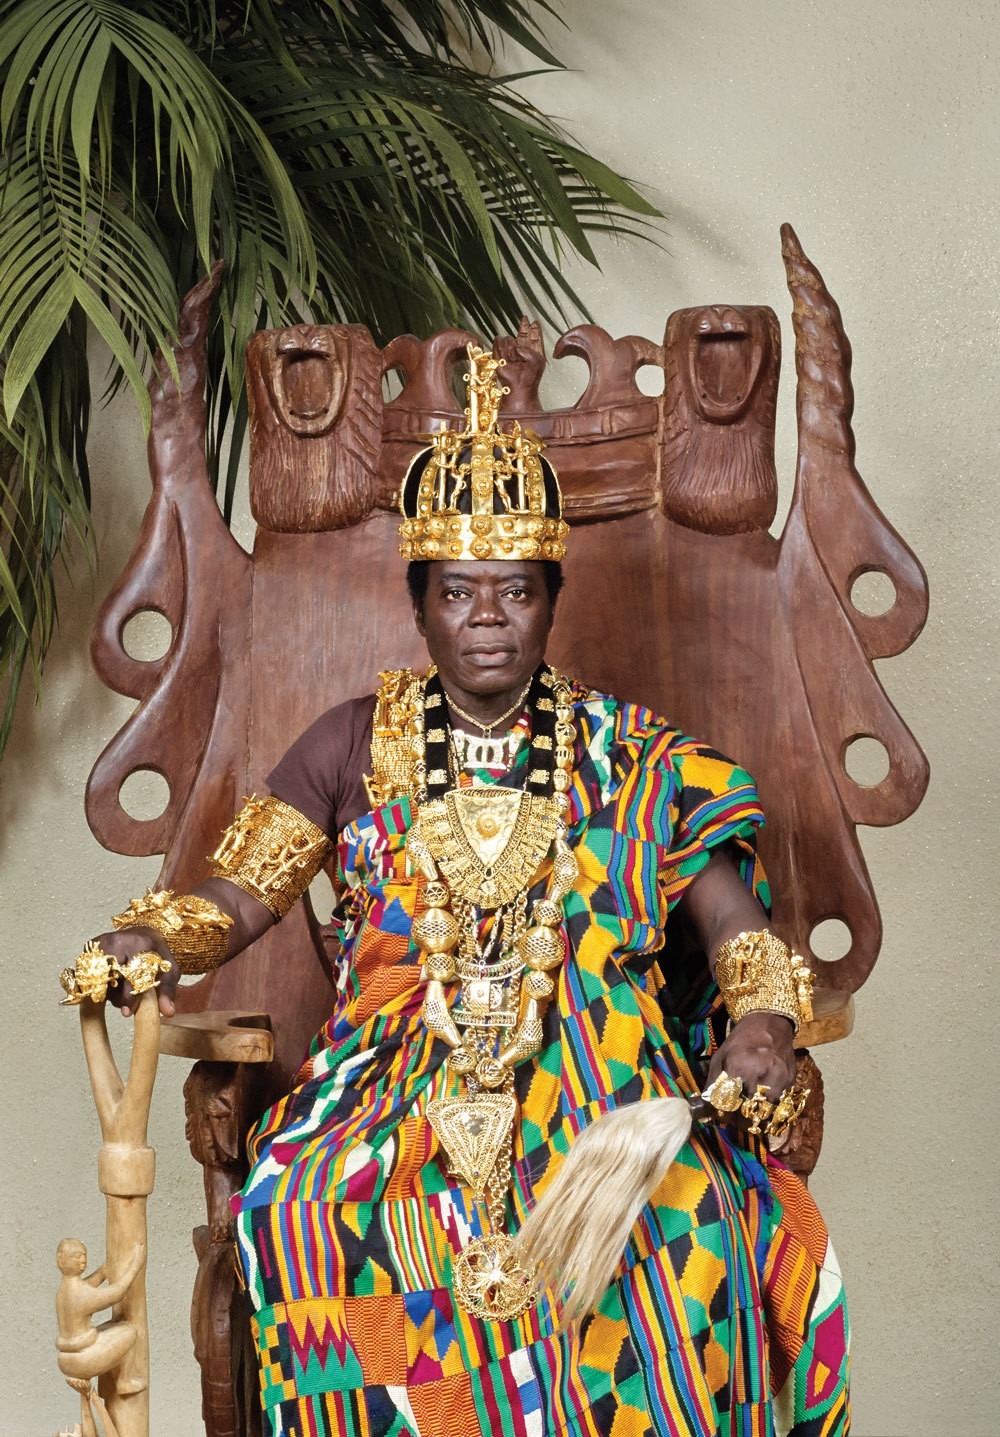 meet-king-bansah-part-time-monarch-full-time-auto-mechanic-body-image-1446389062-size_1000